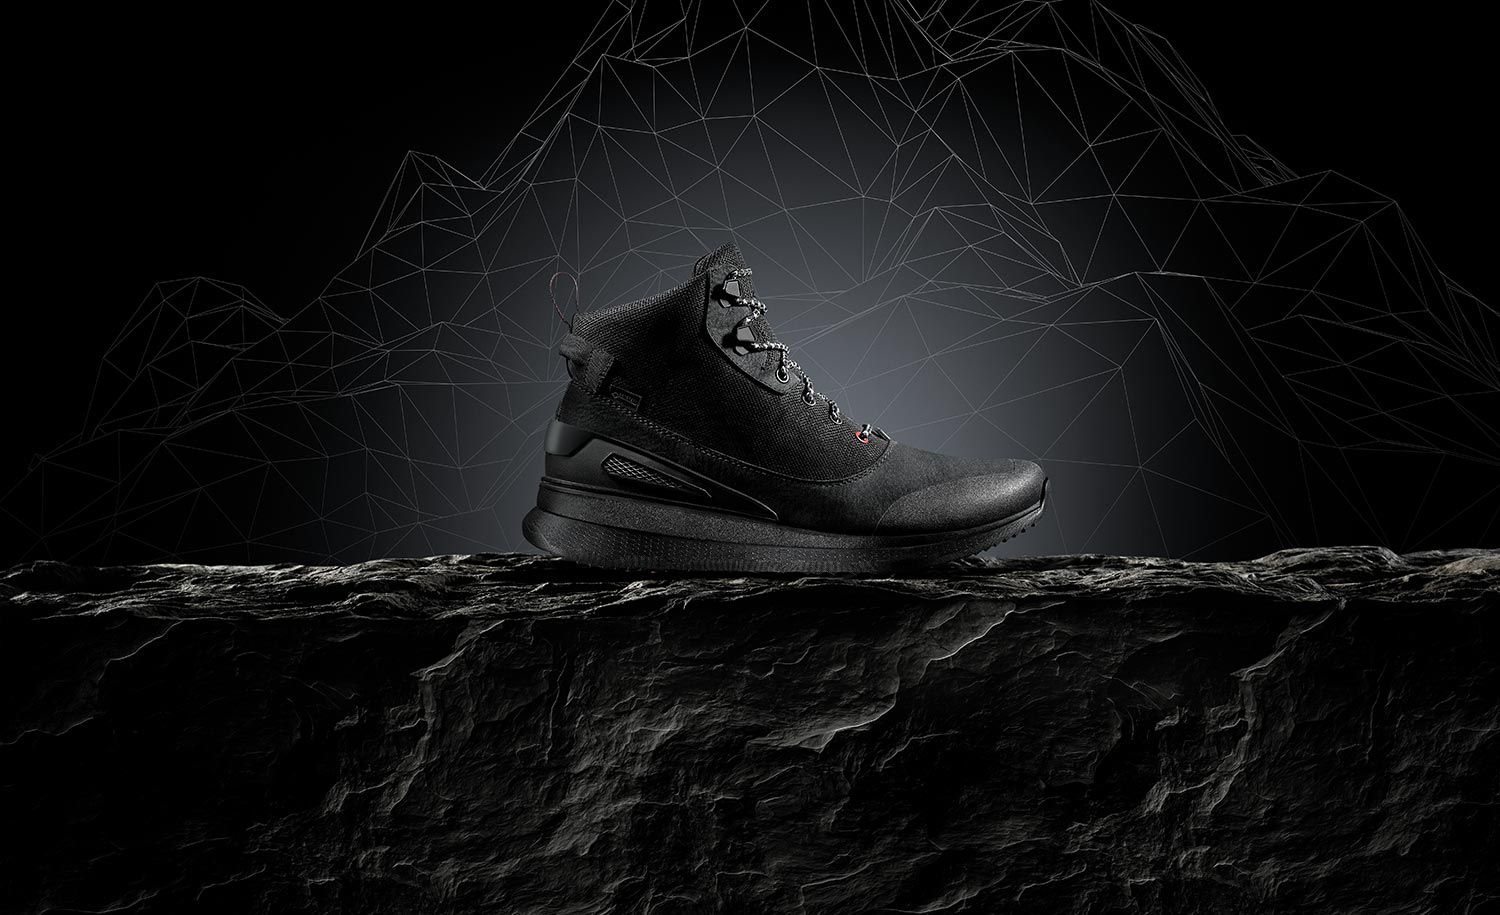 Black walking boot on a textured surface with a monochrome illustrative mountain range background